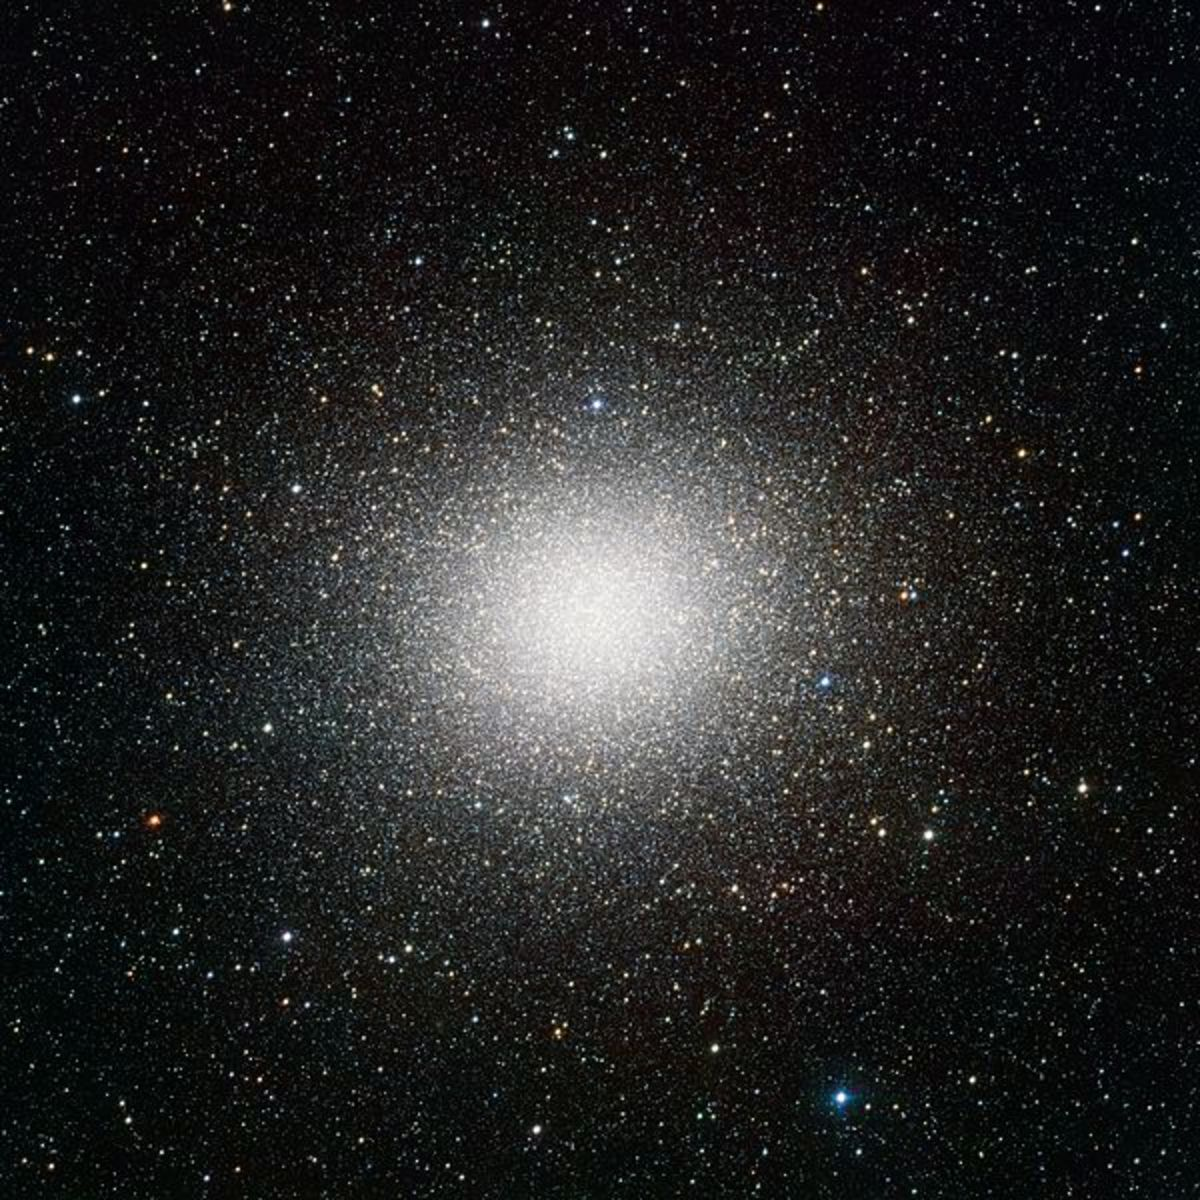 The second released VST image may be the best portrait of the globular star cluster Omega Centauri ever made. Omega Centauri, in the constellation of Centaurus (The Centaur), is the largest globular cluster in the sky, but the very wide field of view